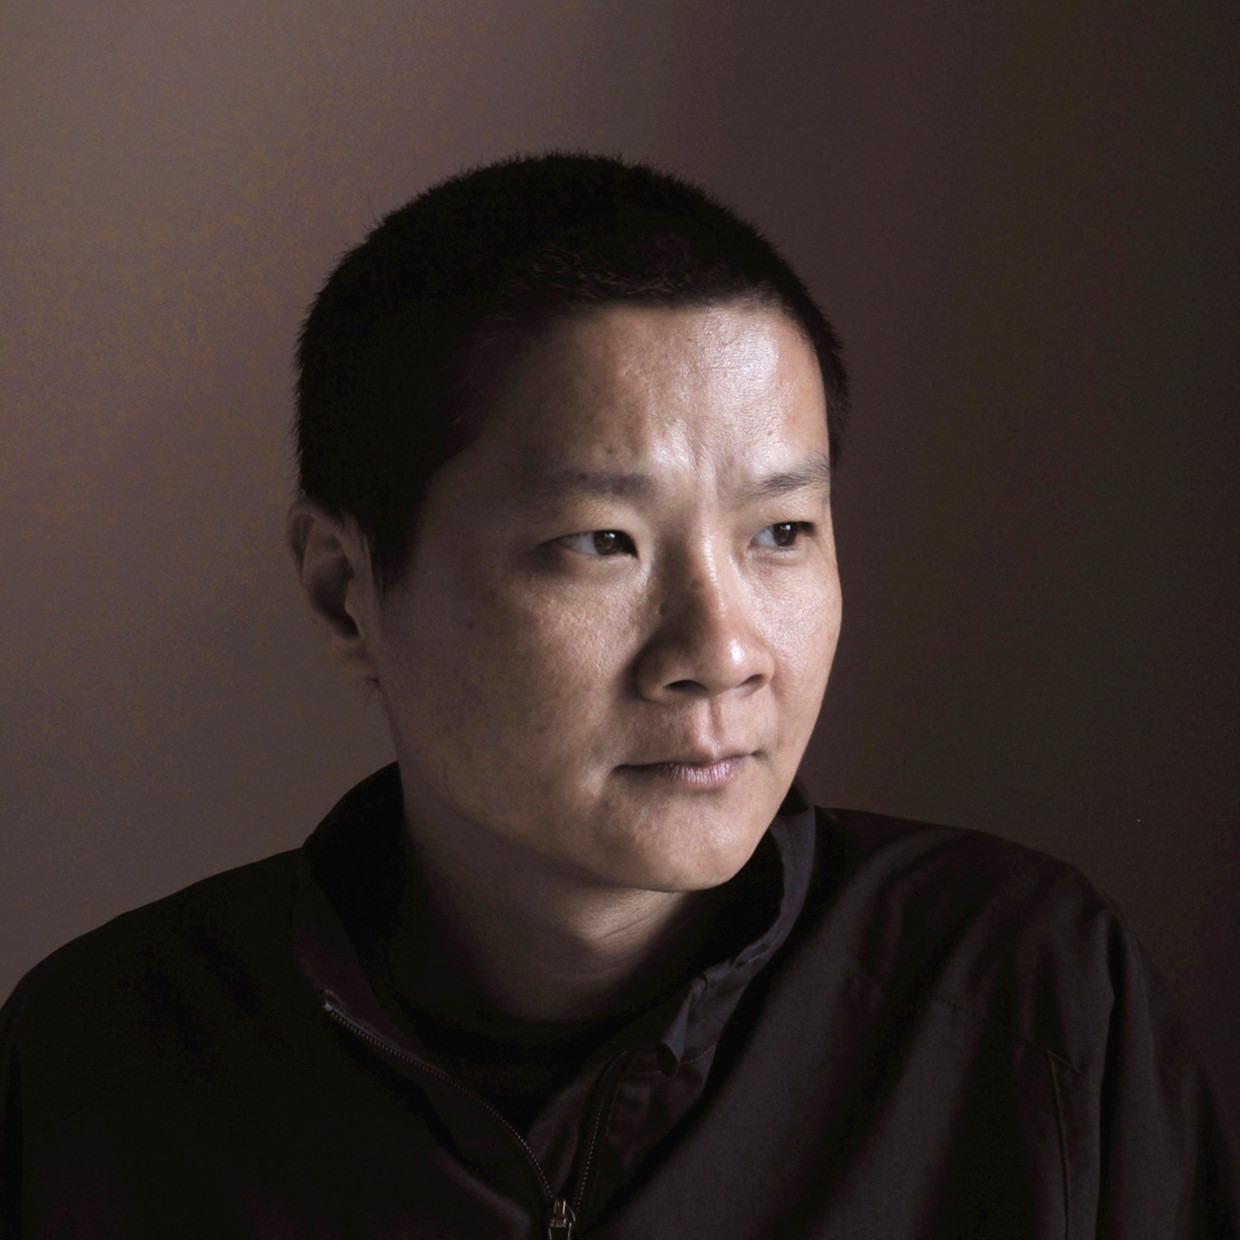 Artist Luo Dan Luo Dan was born in Chongqing, China in 1968 and graduated from Sichuan Academy of Fine Arts...